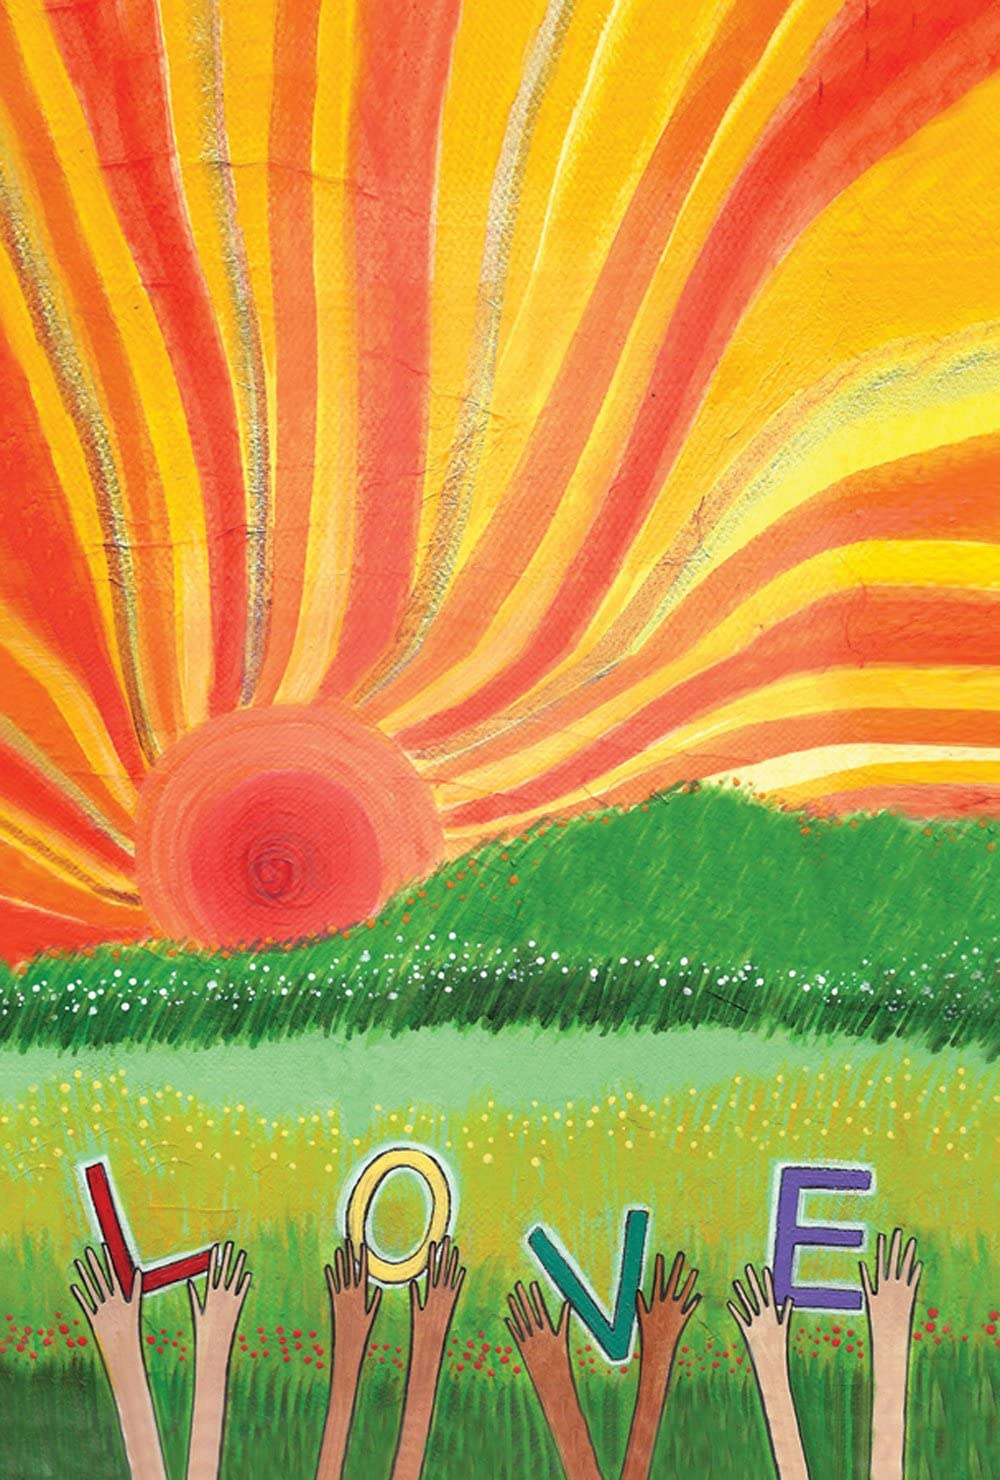 Toland Home Garden Sunset Love 28 x 40 Inch Decorative Colorful Spring Summer Sun Field Hands House Flag